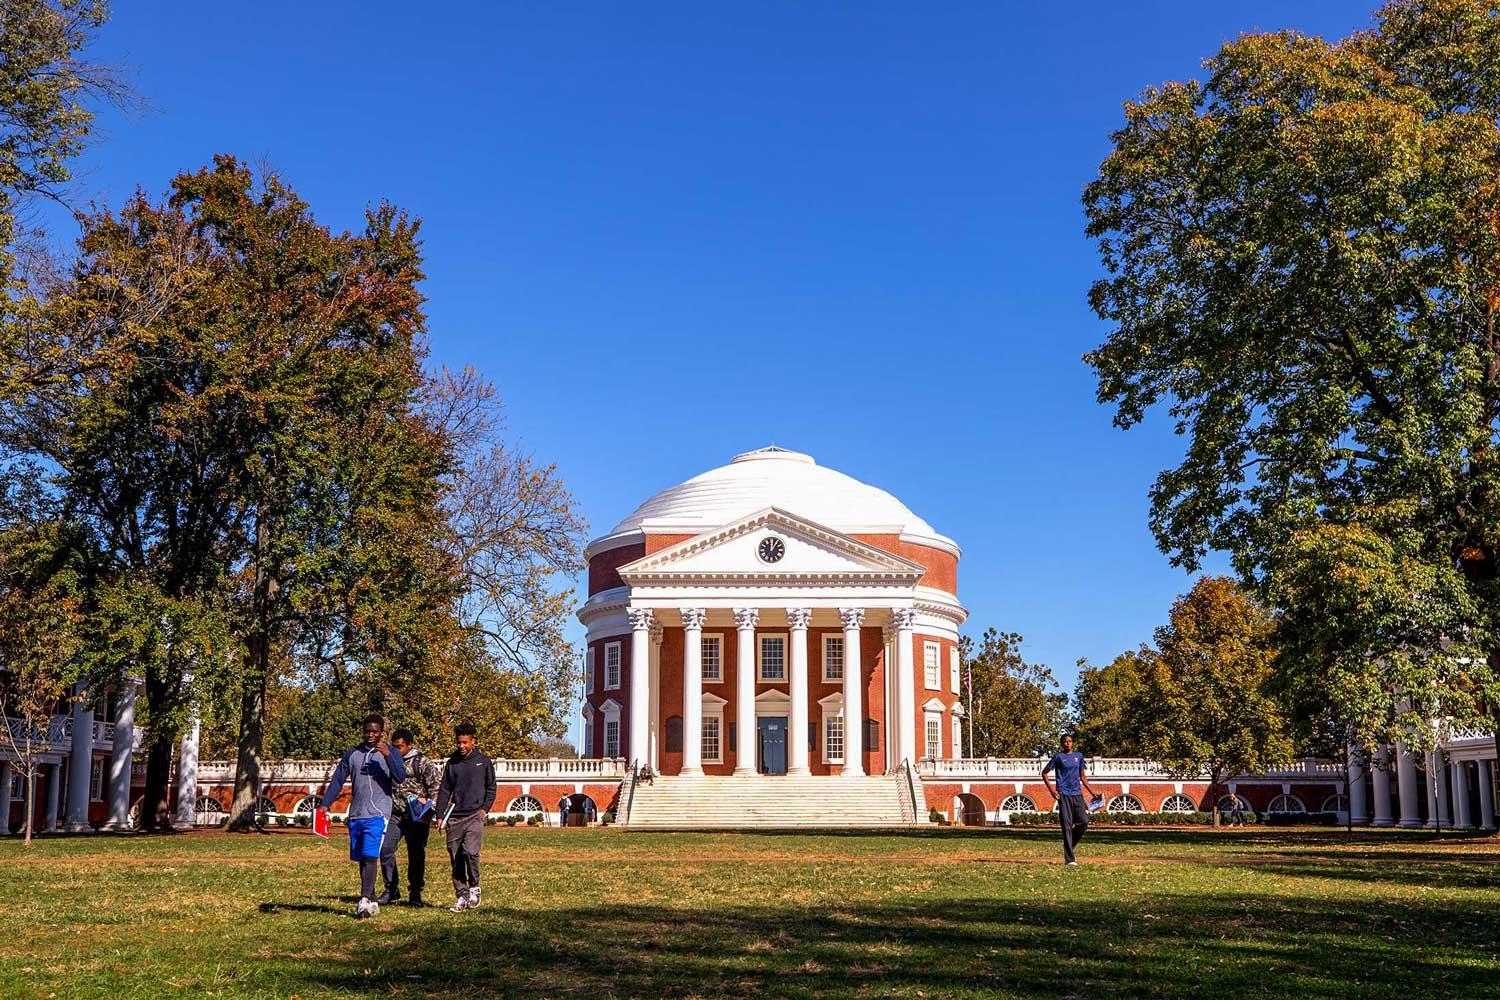 U.S. News Lists UVA Among Top Three Public Universities for 27th Straight Year